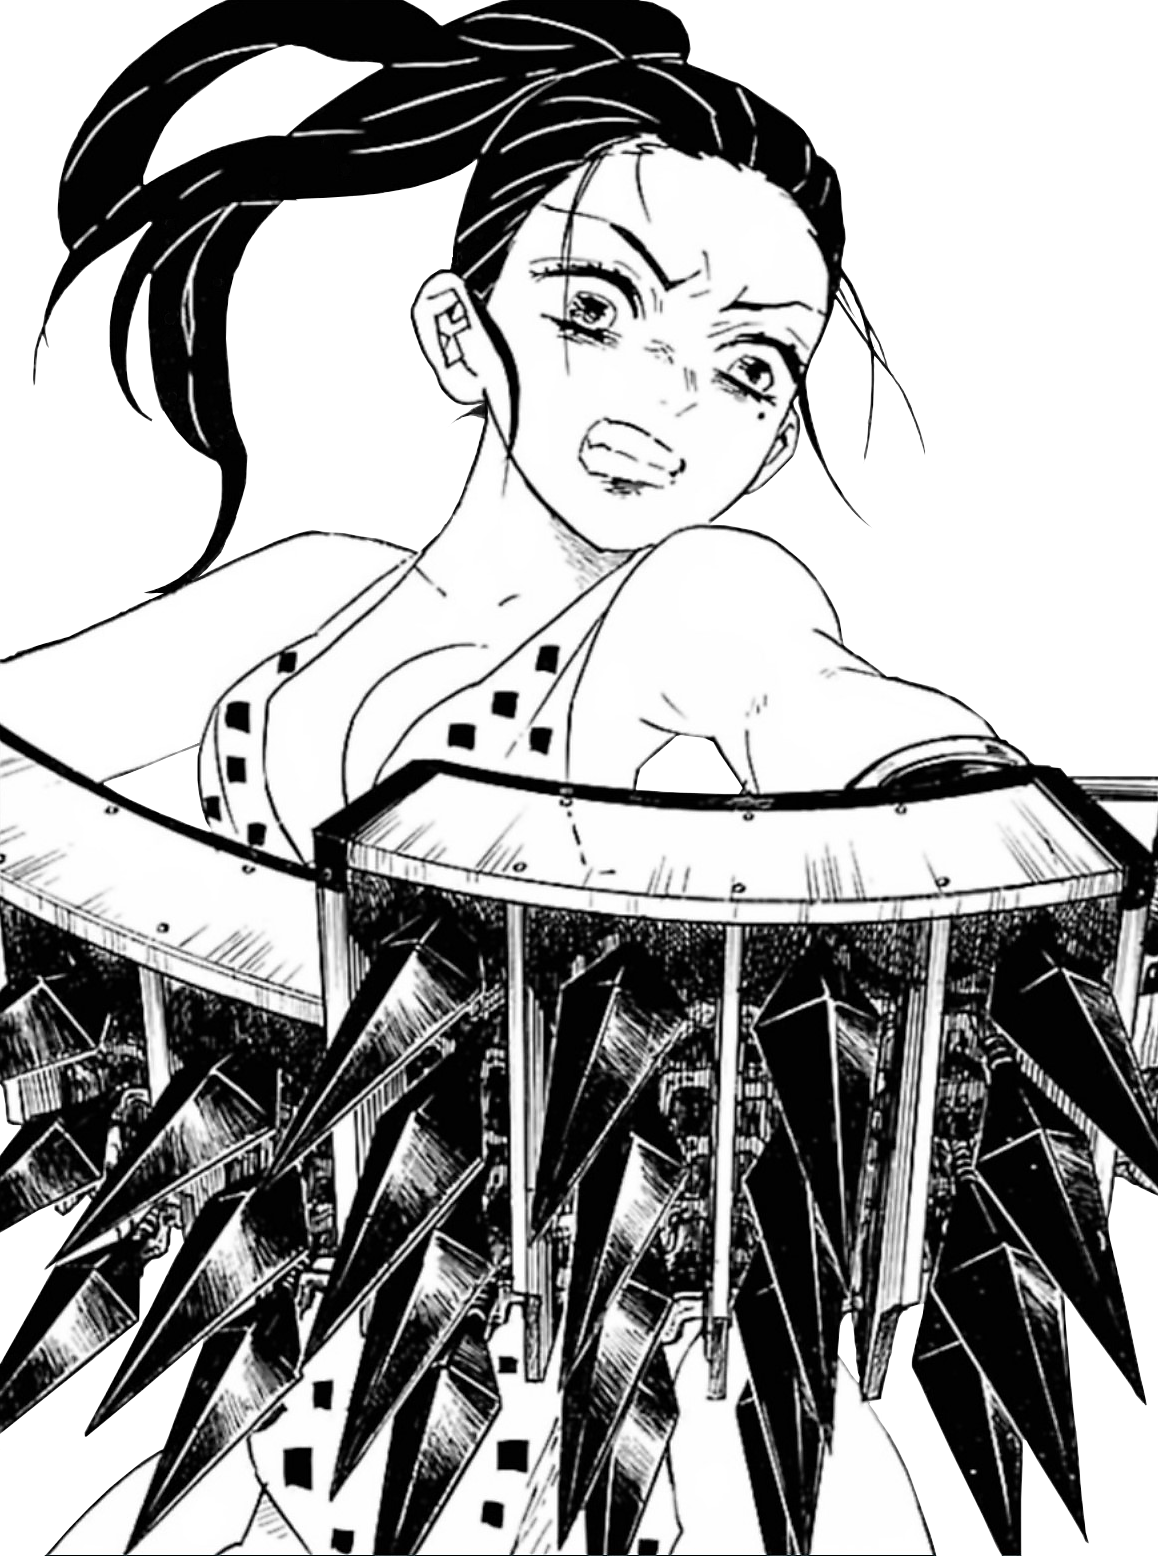 Hinatsuru Kimetsu No Yaiba Wikia Fandom Guys you're killing me with the chadness xd but please continue it'd be amazing if we got over 20 comments all about uzui being a chad. hinatsuru kimetsu no yaiba wikia fandom